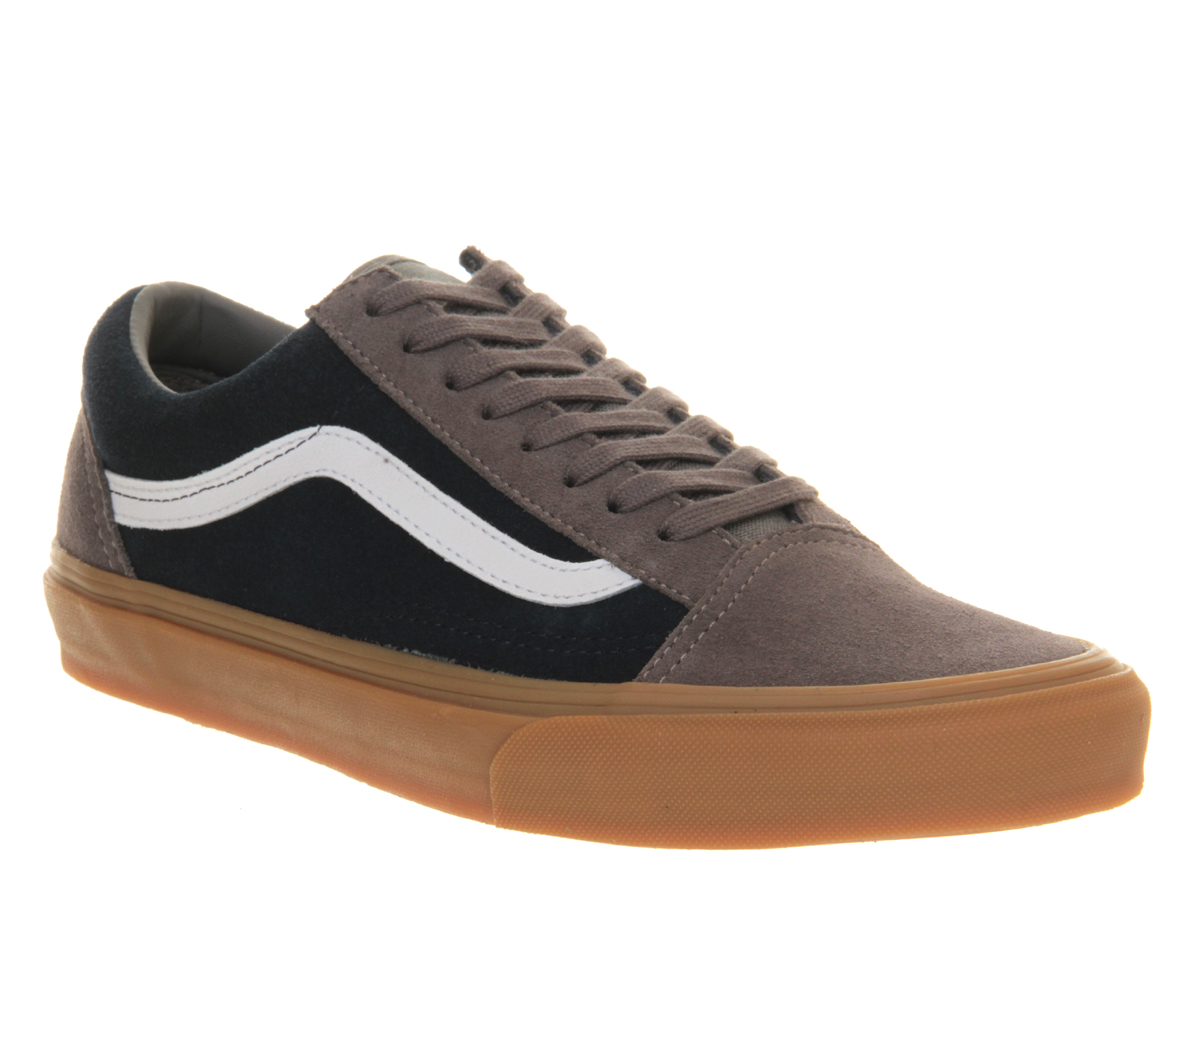 vans old skool navy blue suede